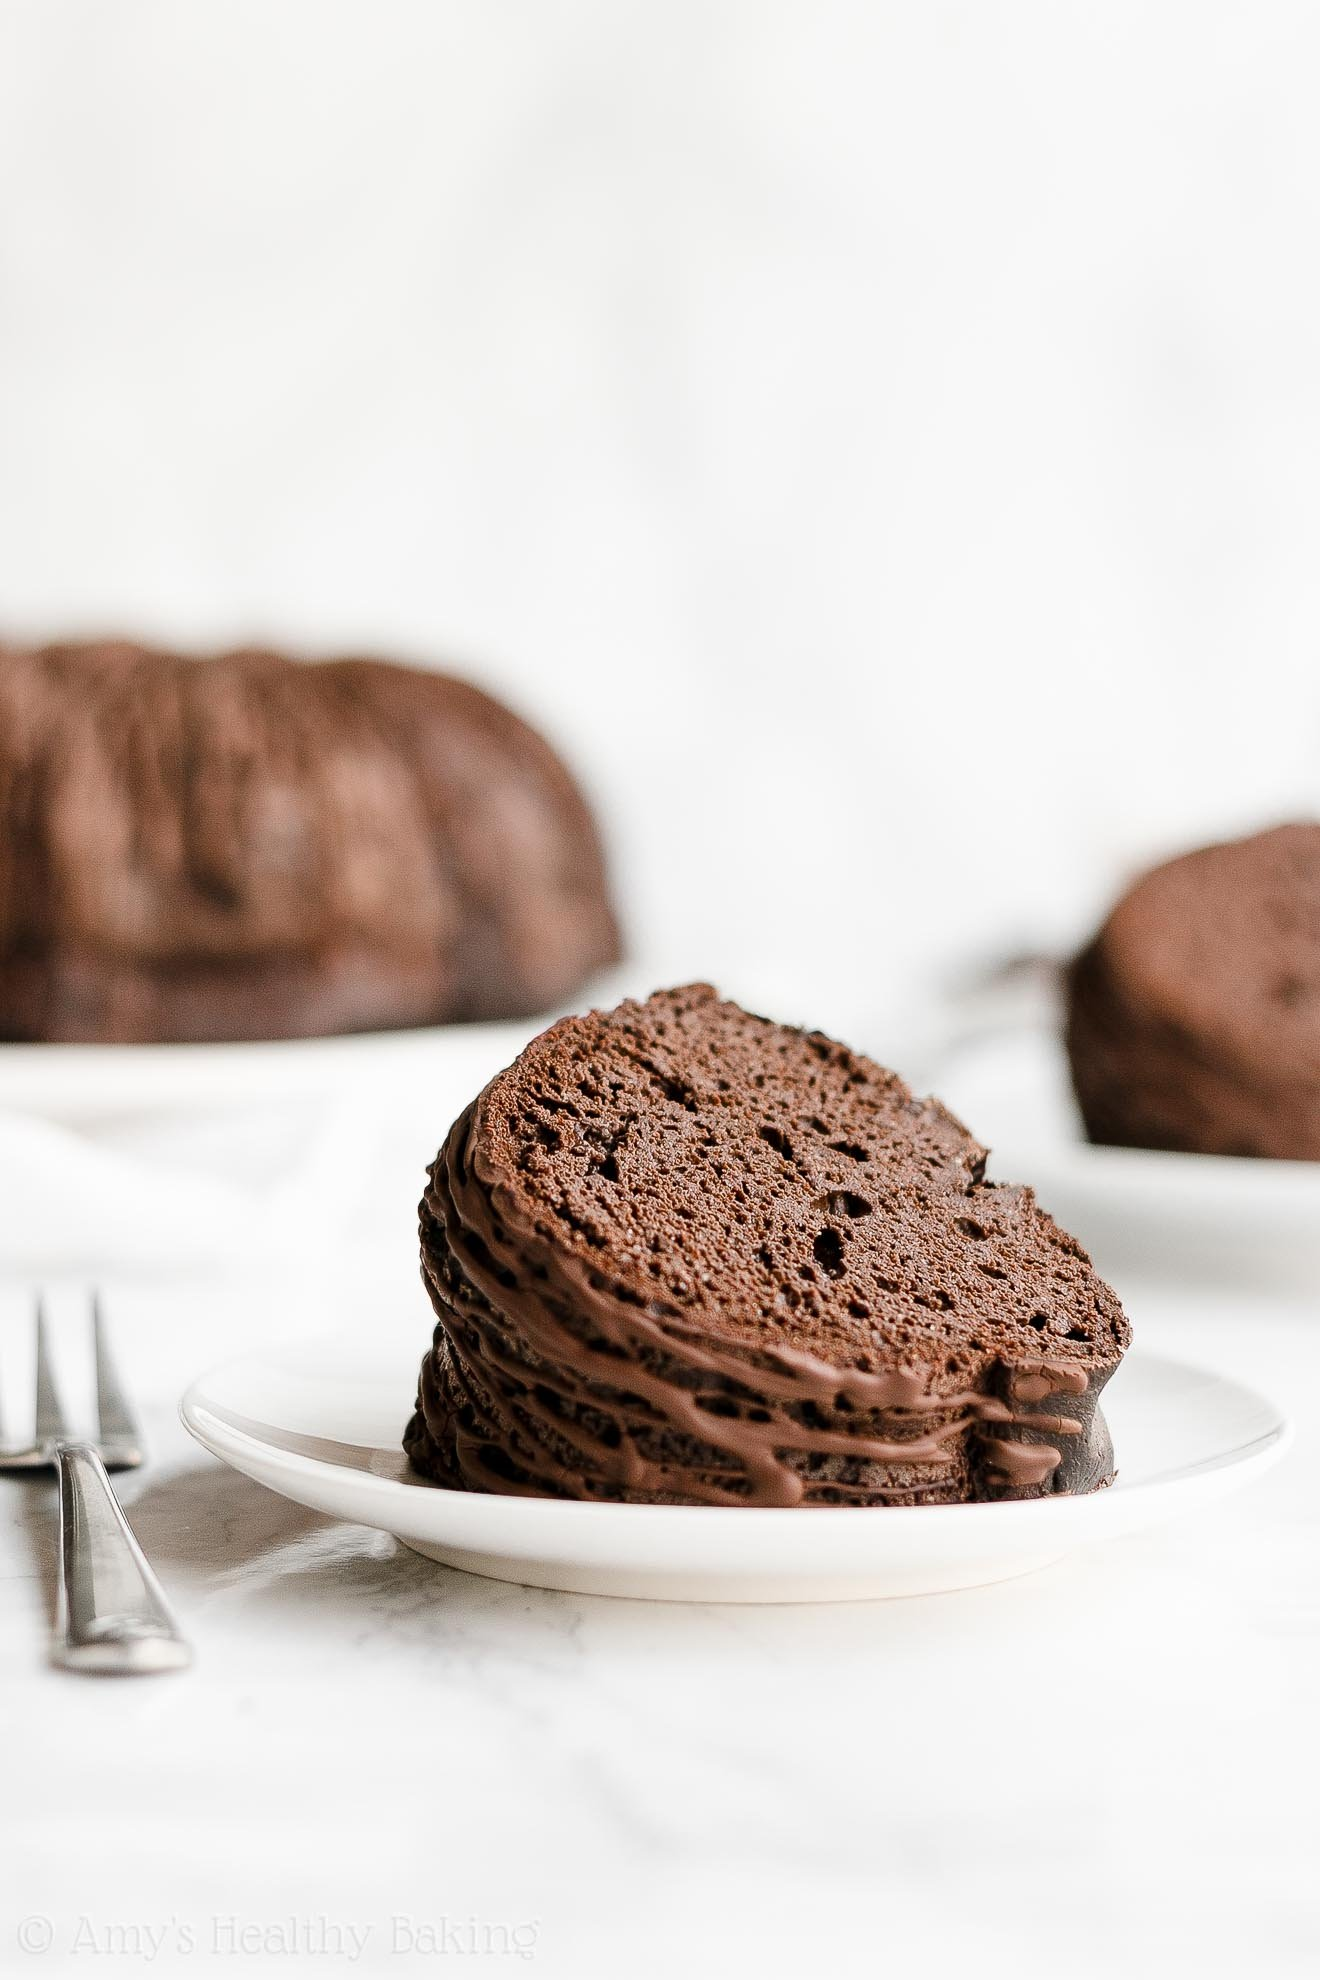 ULTIMATE Best Ever Healthy Low Sugar Low Fat Chocolate Fudge Bundt Cake